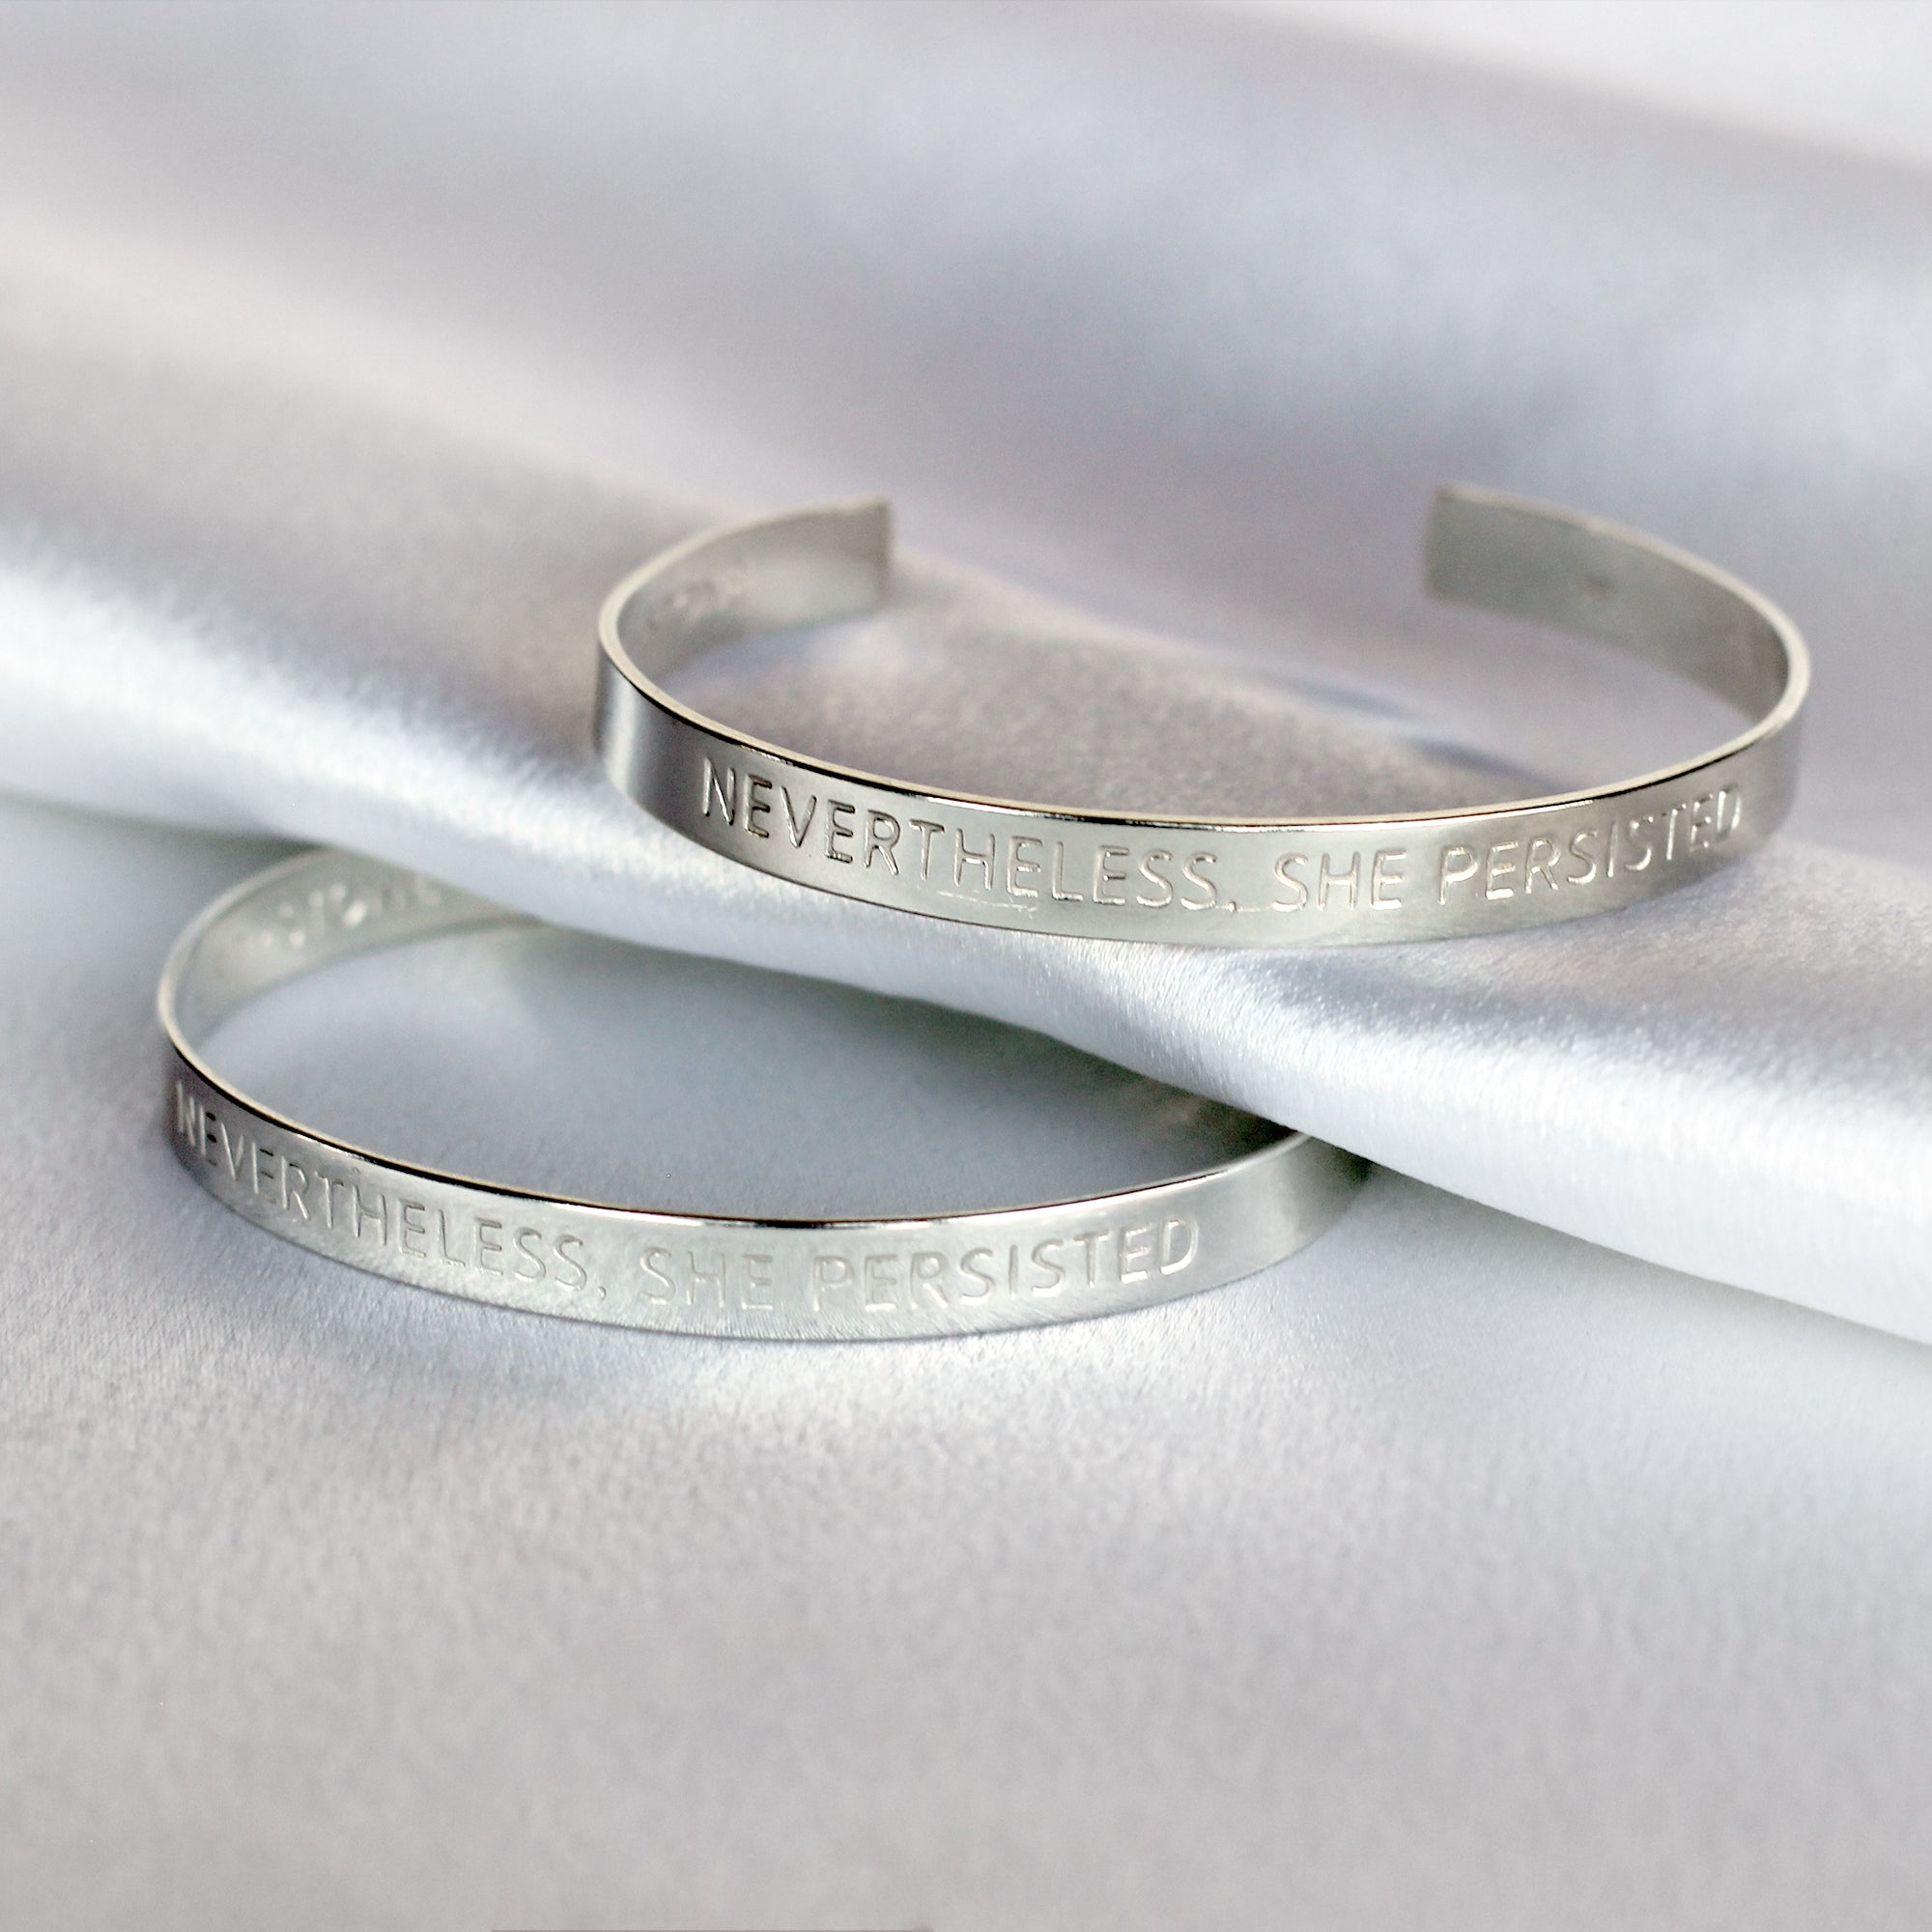 'Nevertheless, She Persisted' - Sterling Silver Cuff